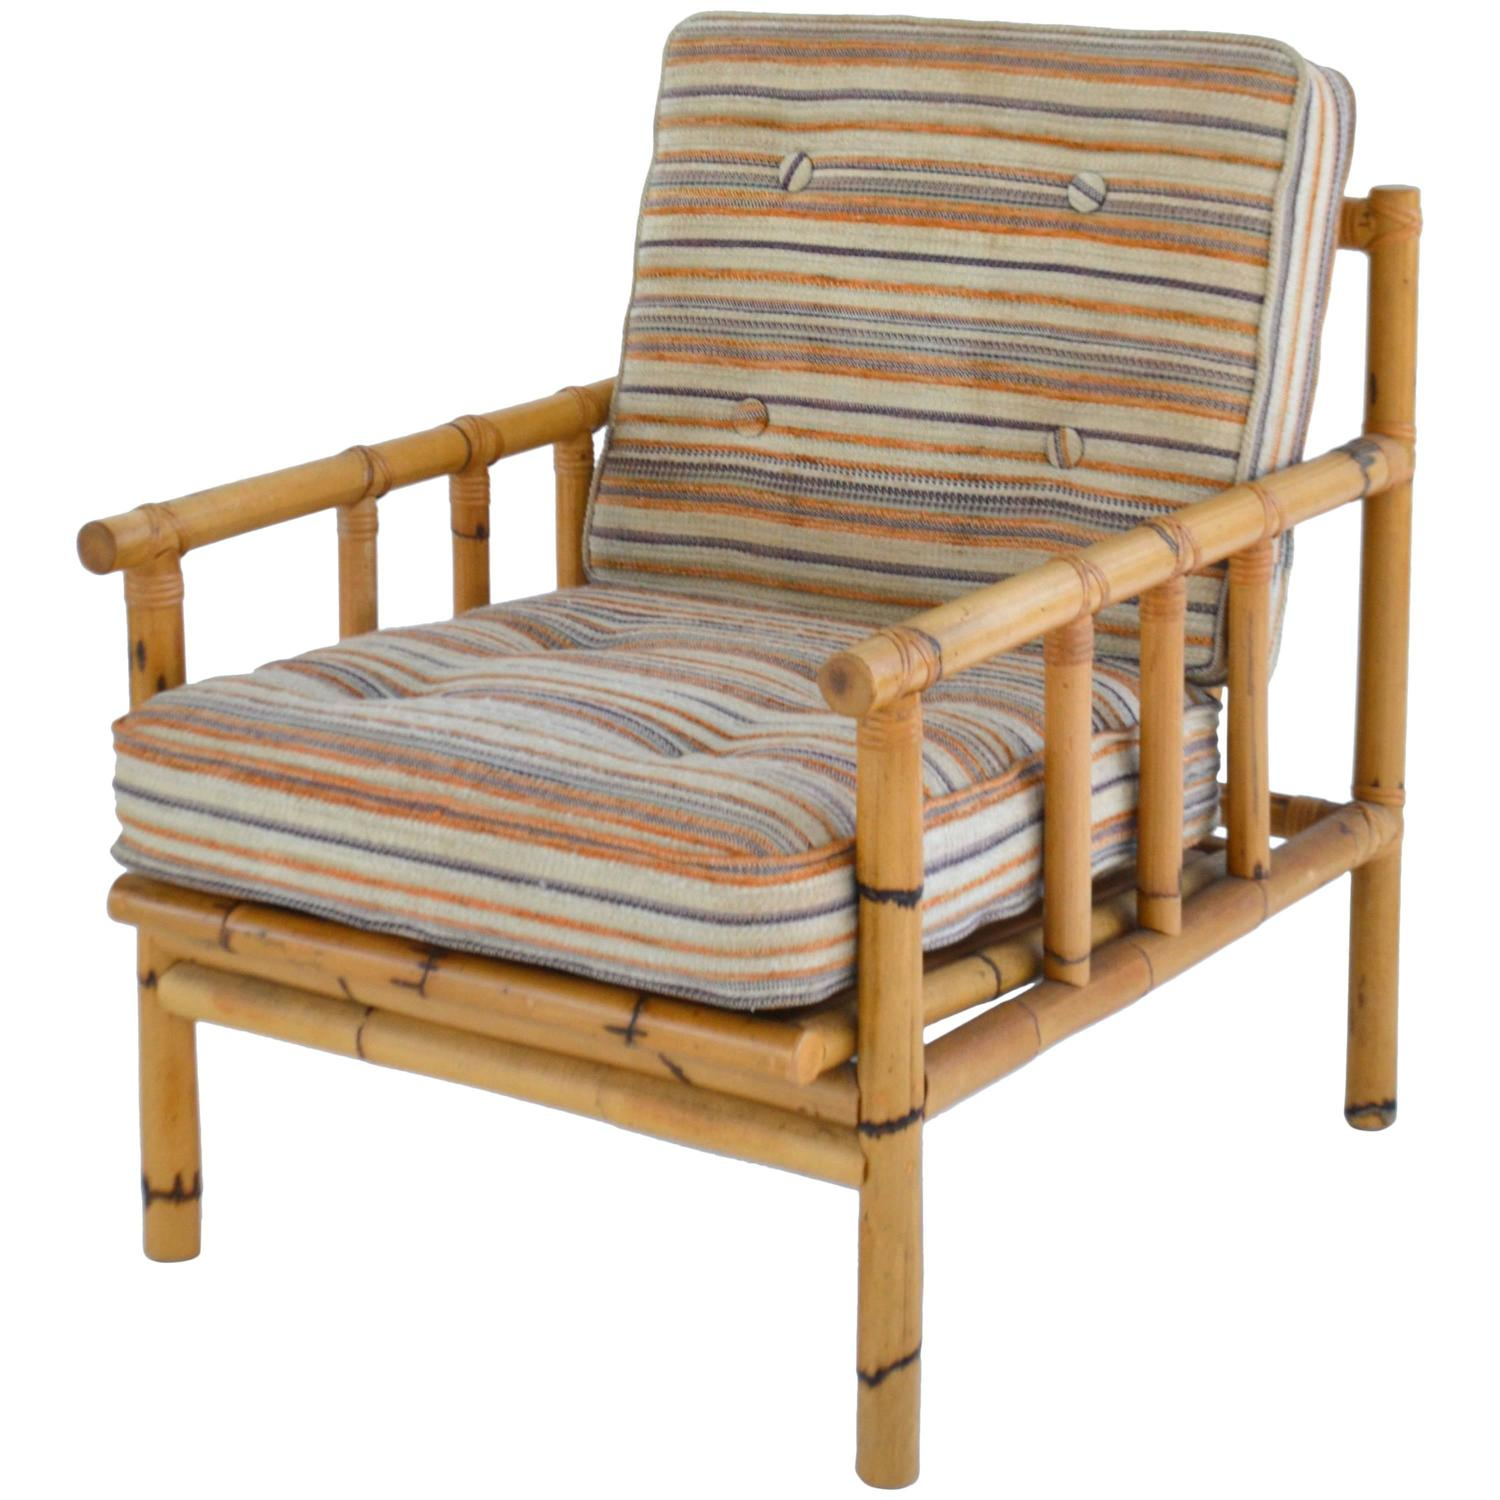 Midcentury Chairs Mid Century Bamboo Club Chair For Sale At 1stdibs